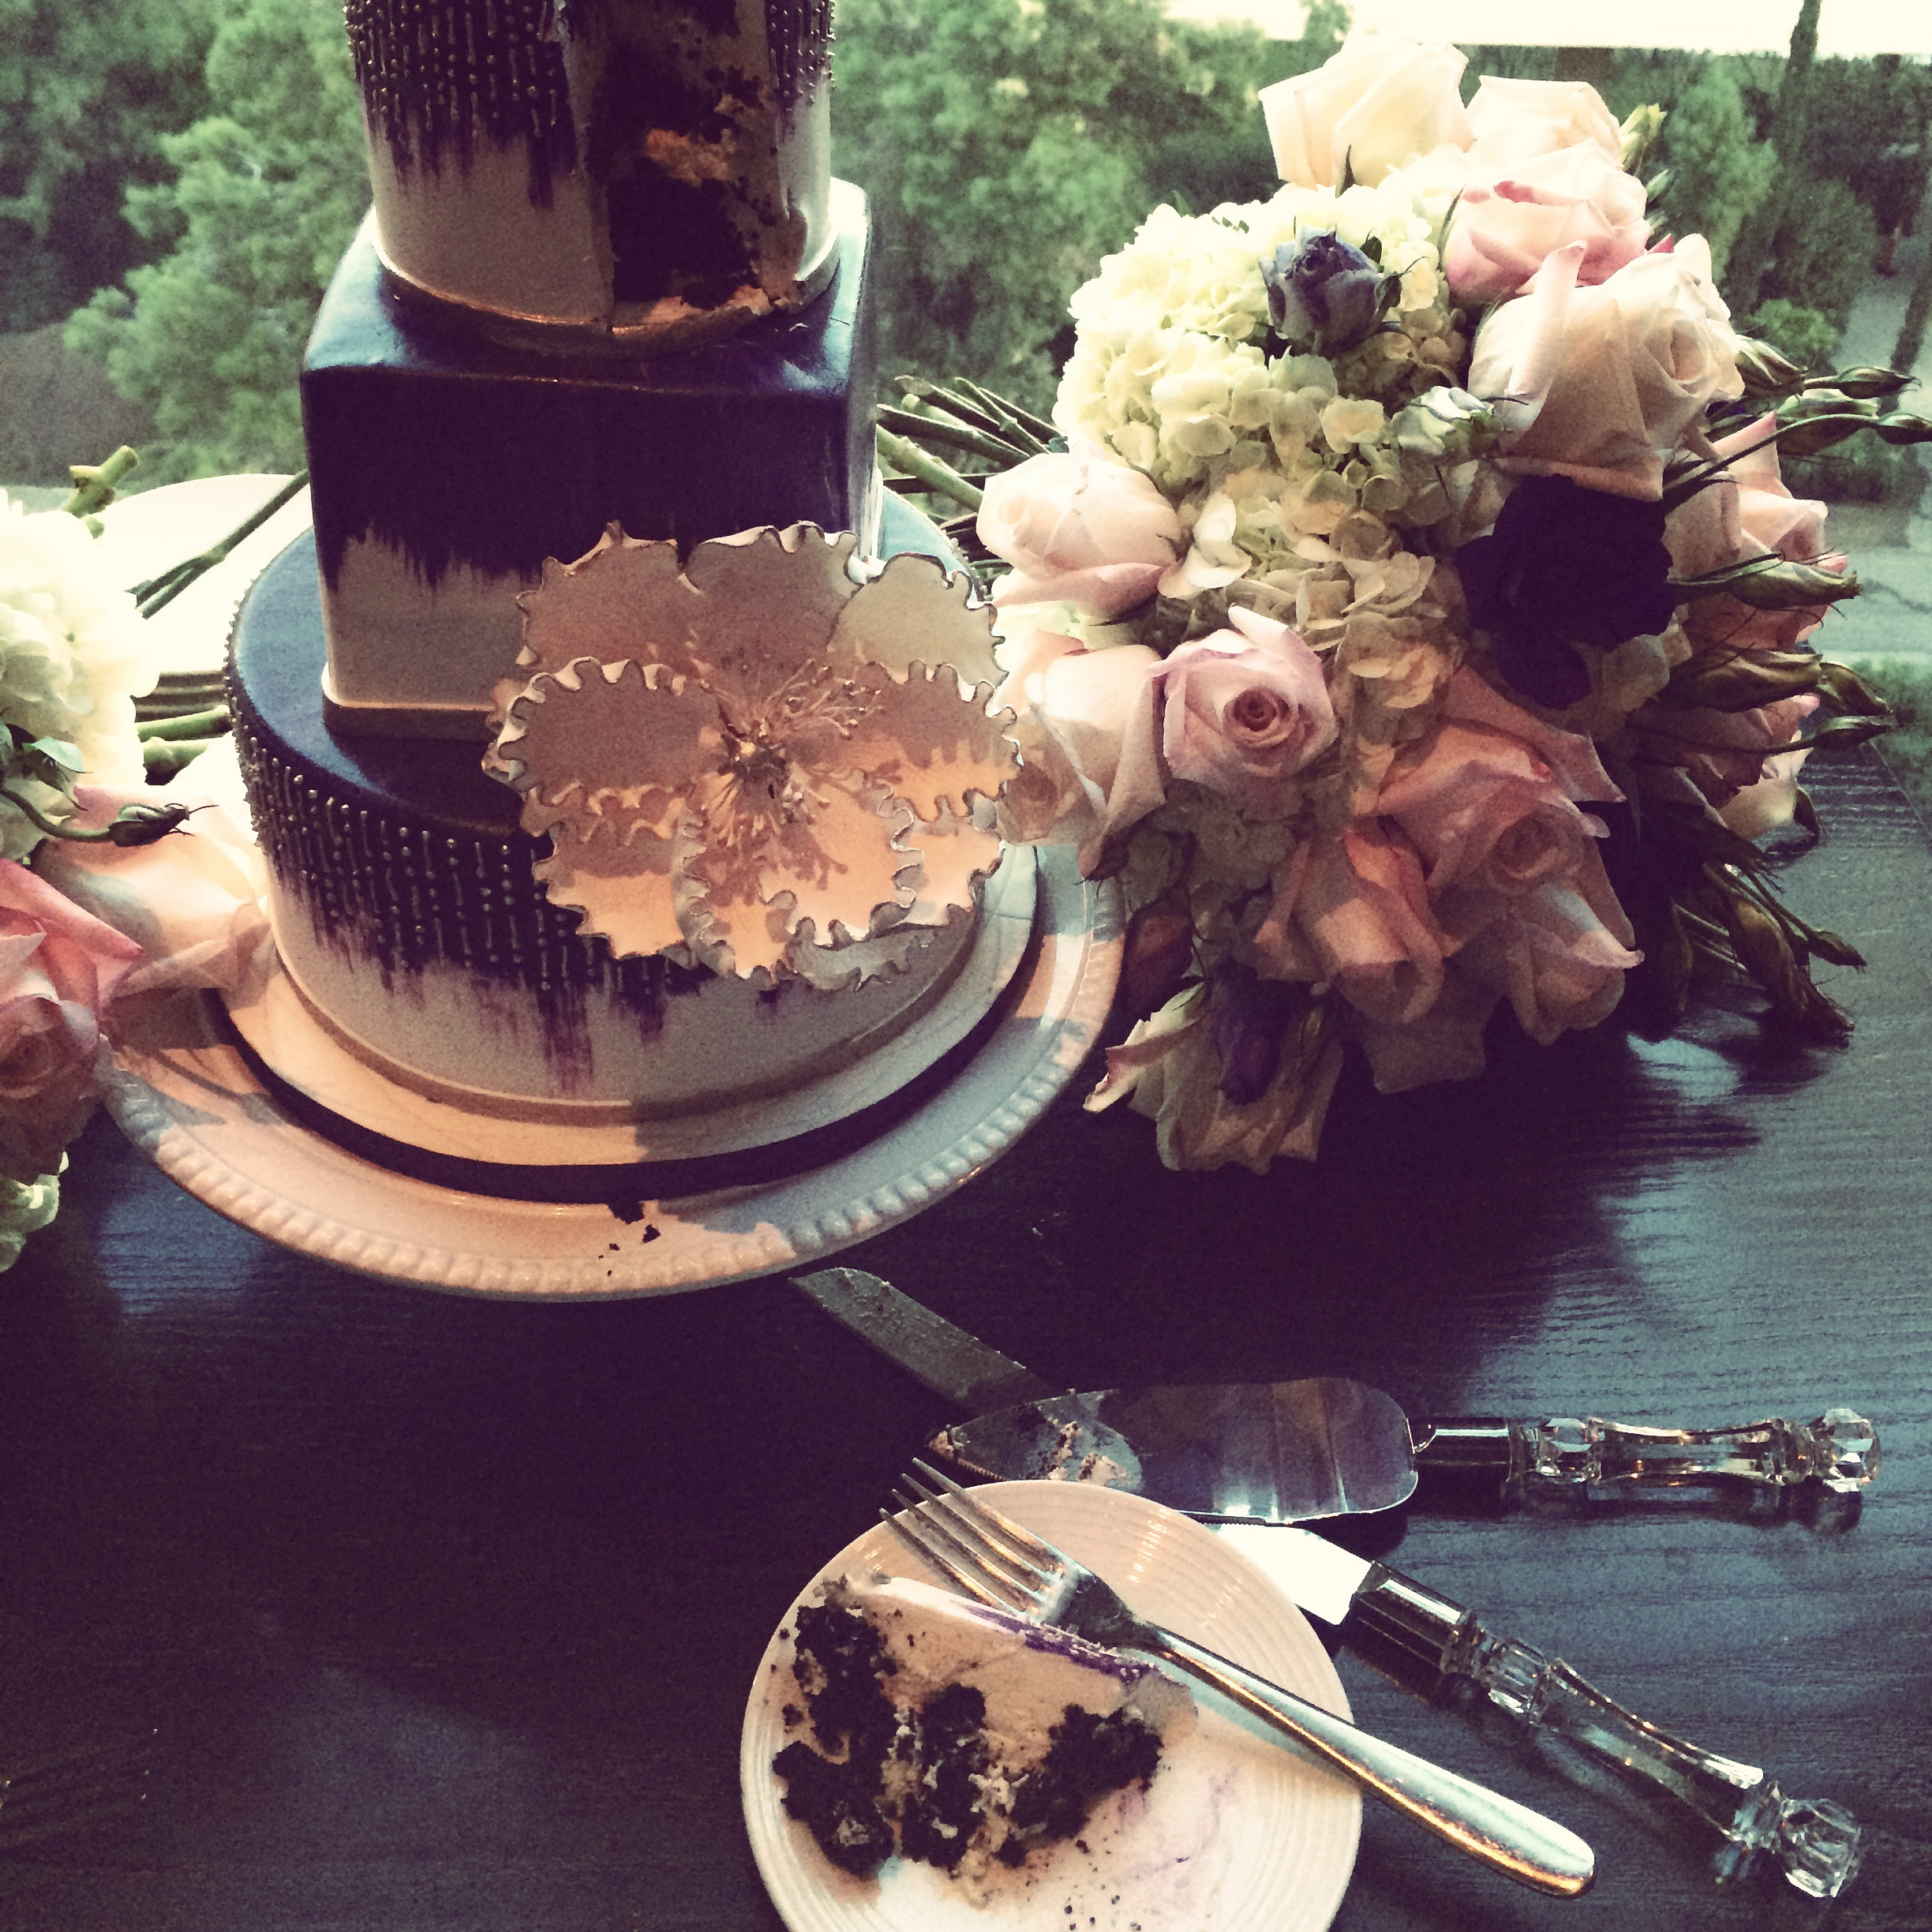 This artistic purple and ivory wedding cake was crafted by  Peridot Sweets  for a last minute wedding that popped up last weekend.  The amazing couple decided to elope with only immediate family, and wanted a cake that was fun and dramatic.  I bet we see more bold colors and dramatic design in the year to come!  Photo by  Andrea Eppolito .